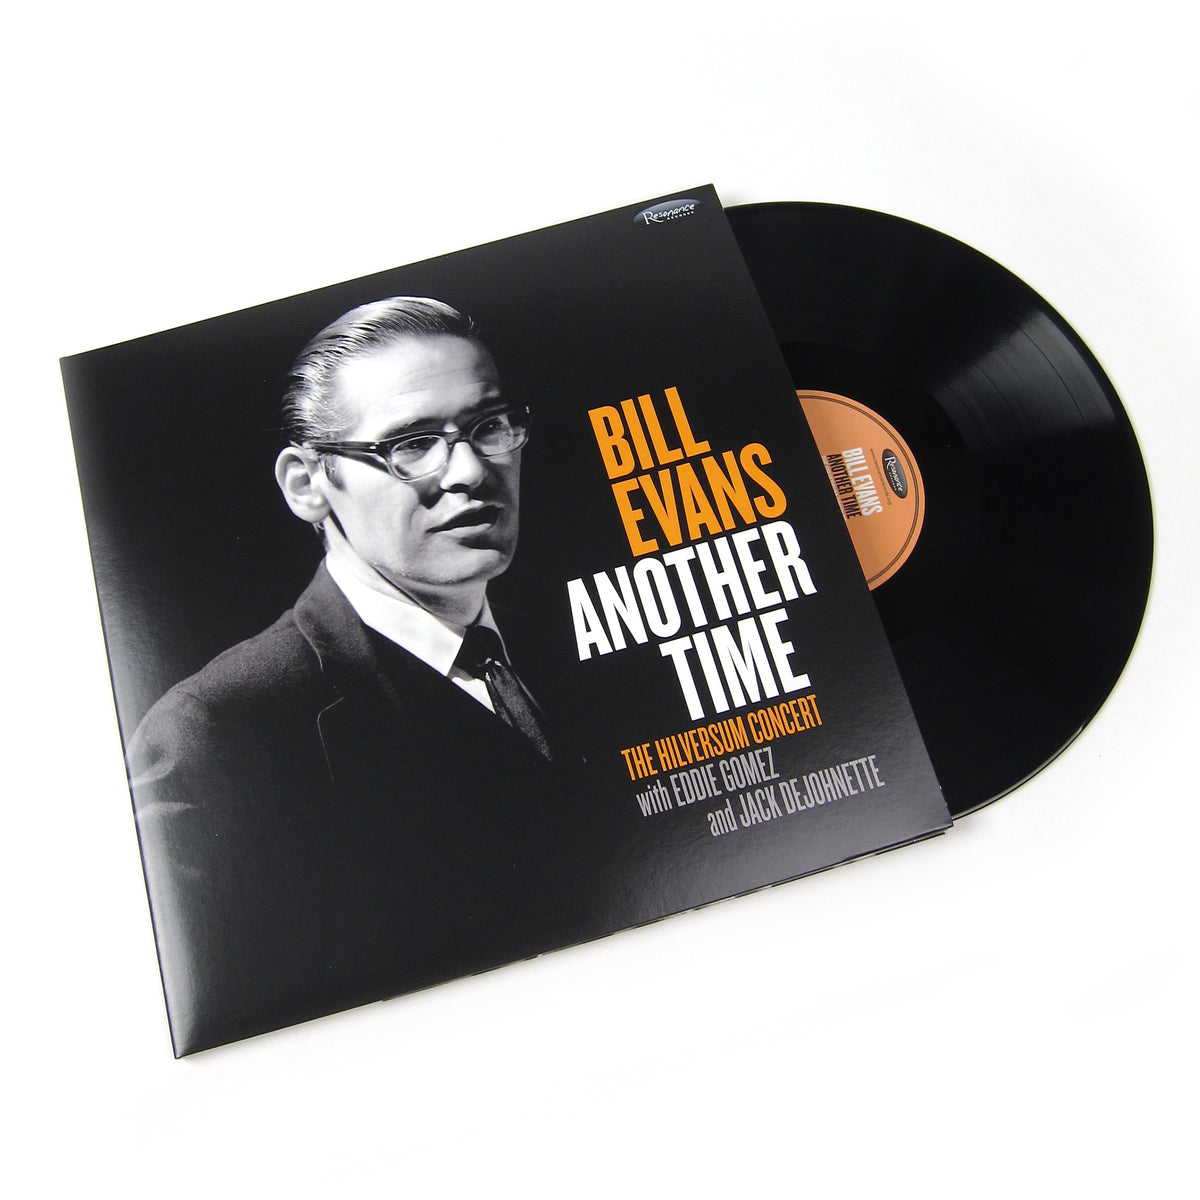 Bill Evans: Another Time - The Hilversum Concert (180g) Vinyl LP (Record Store Day)